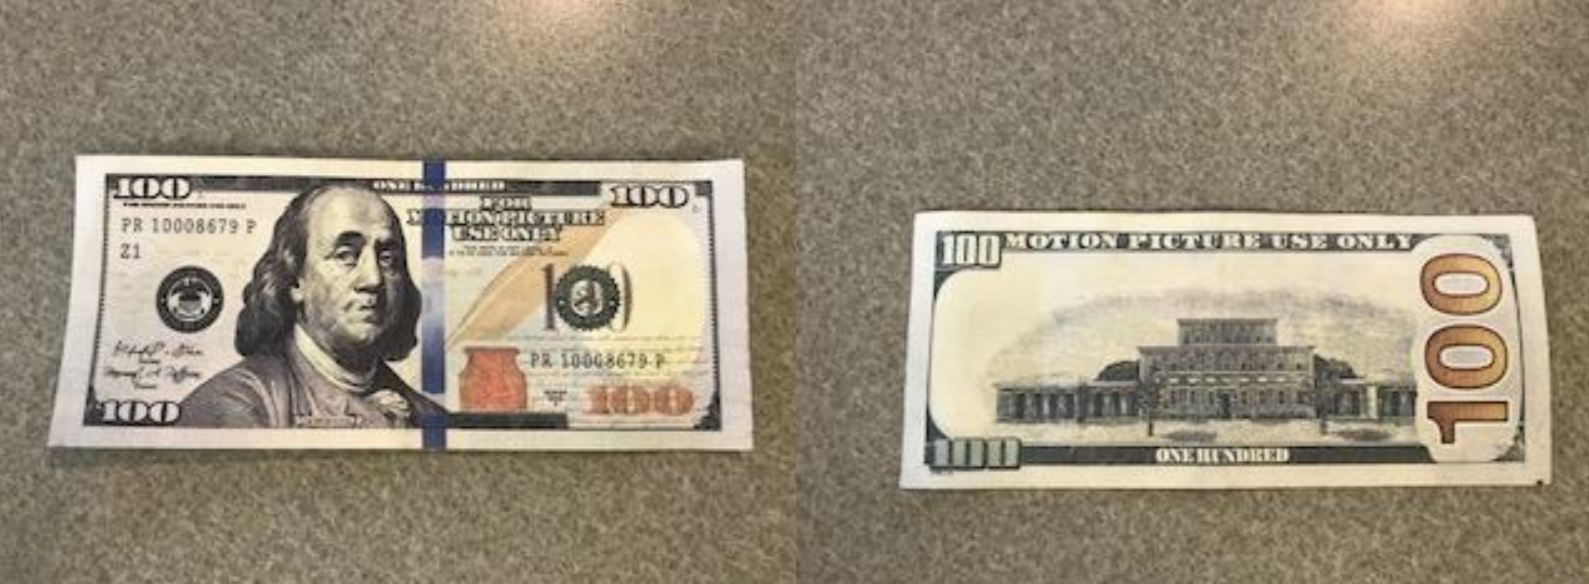 ALERT:  JPD Warns of Fake Money Being Passed Through Community